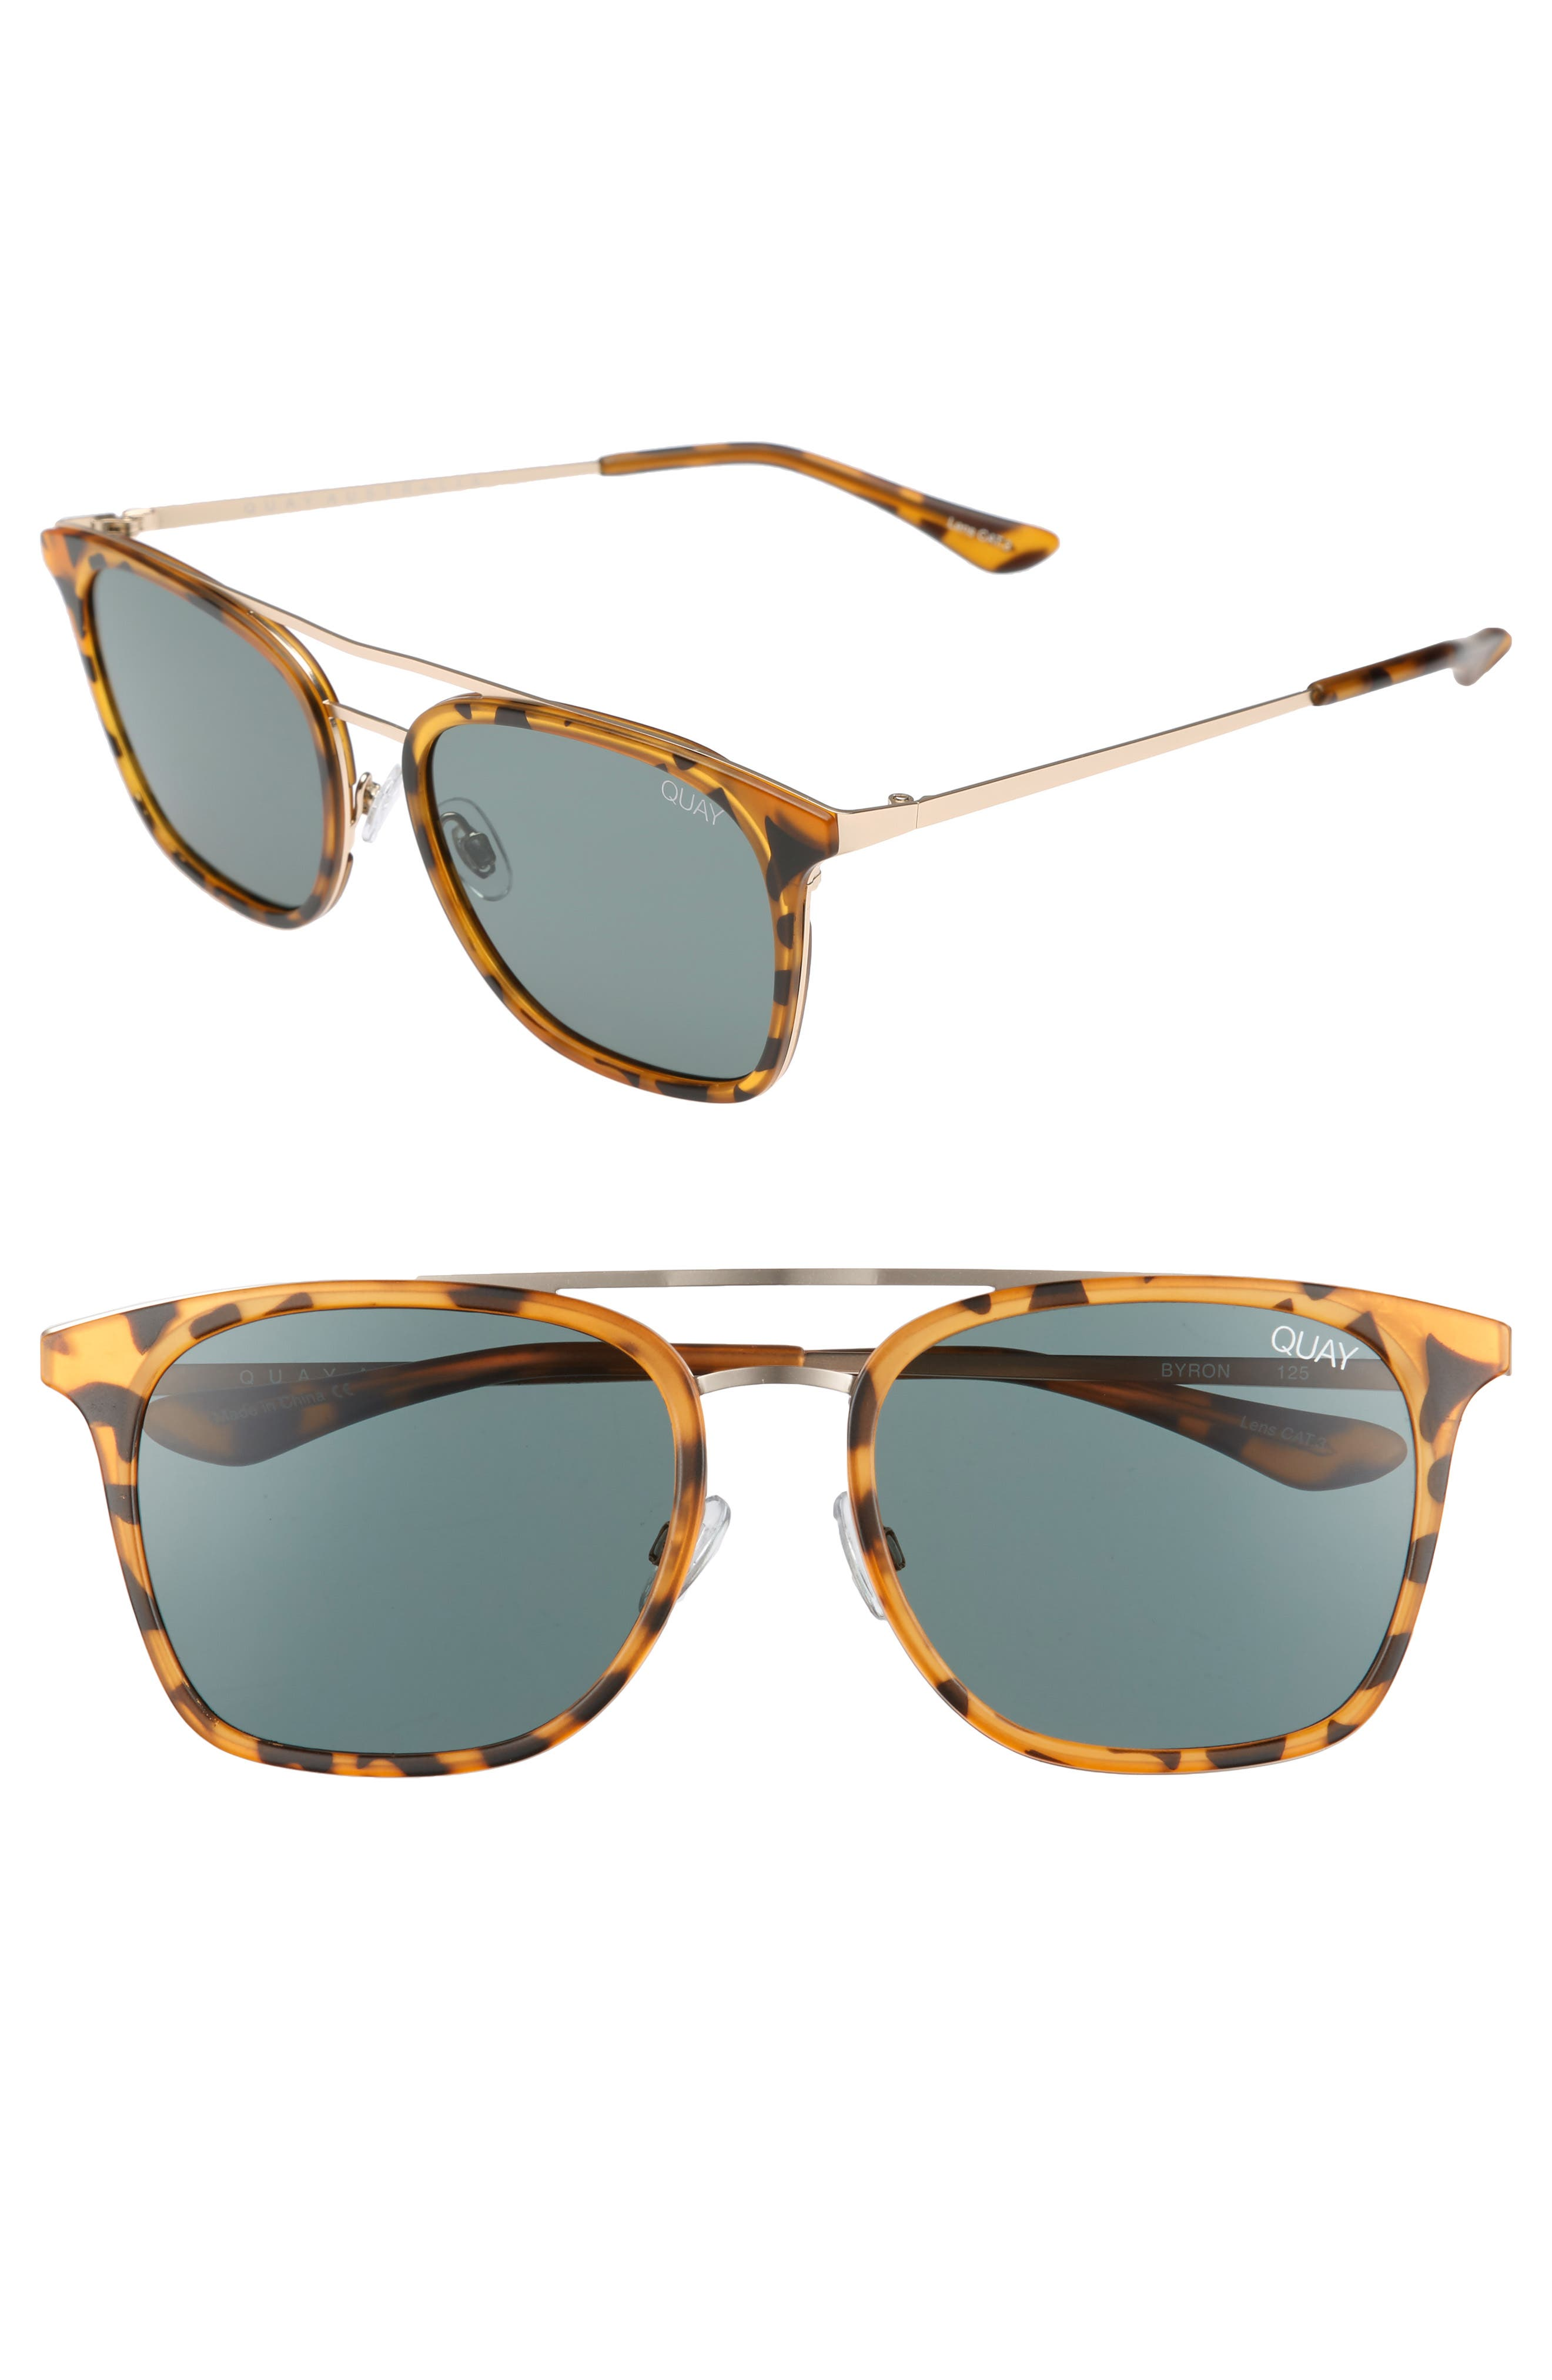 Byron 50mm Sunglasses,                         Main,                         color, Tortoise/ Green